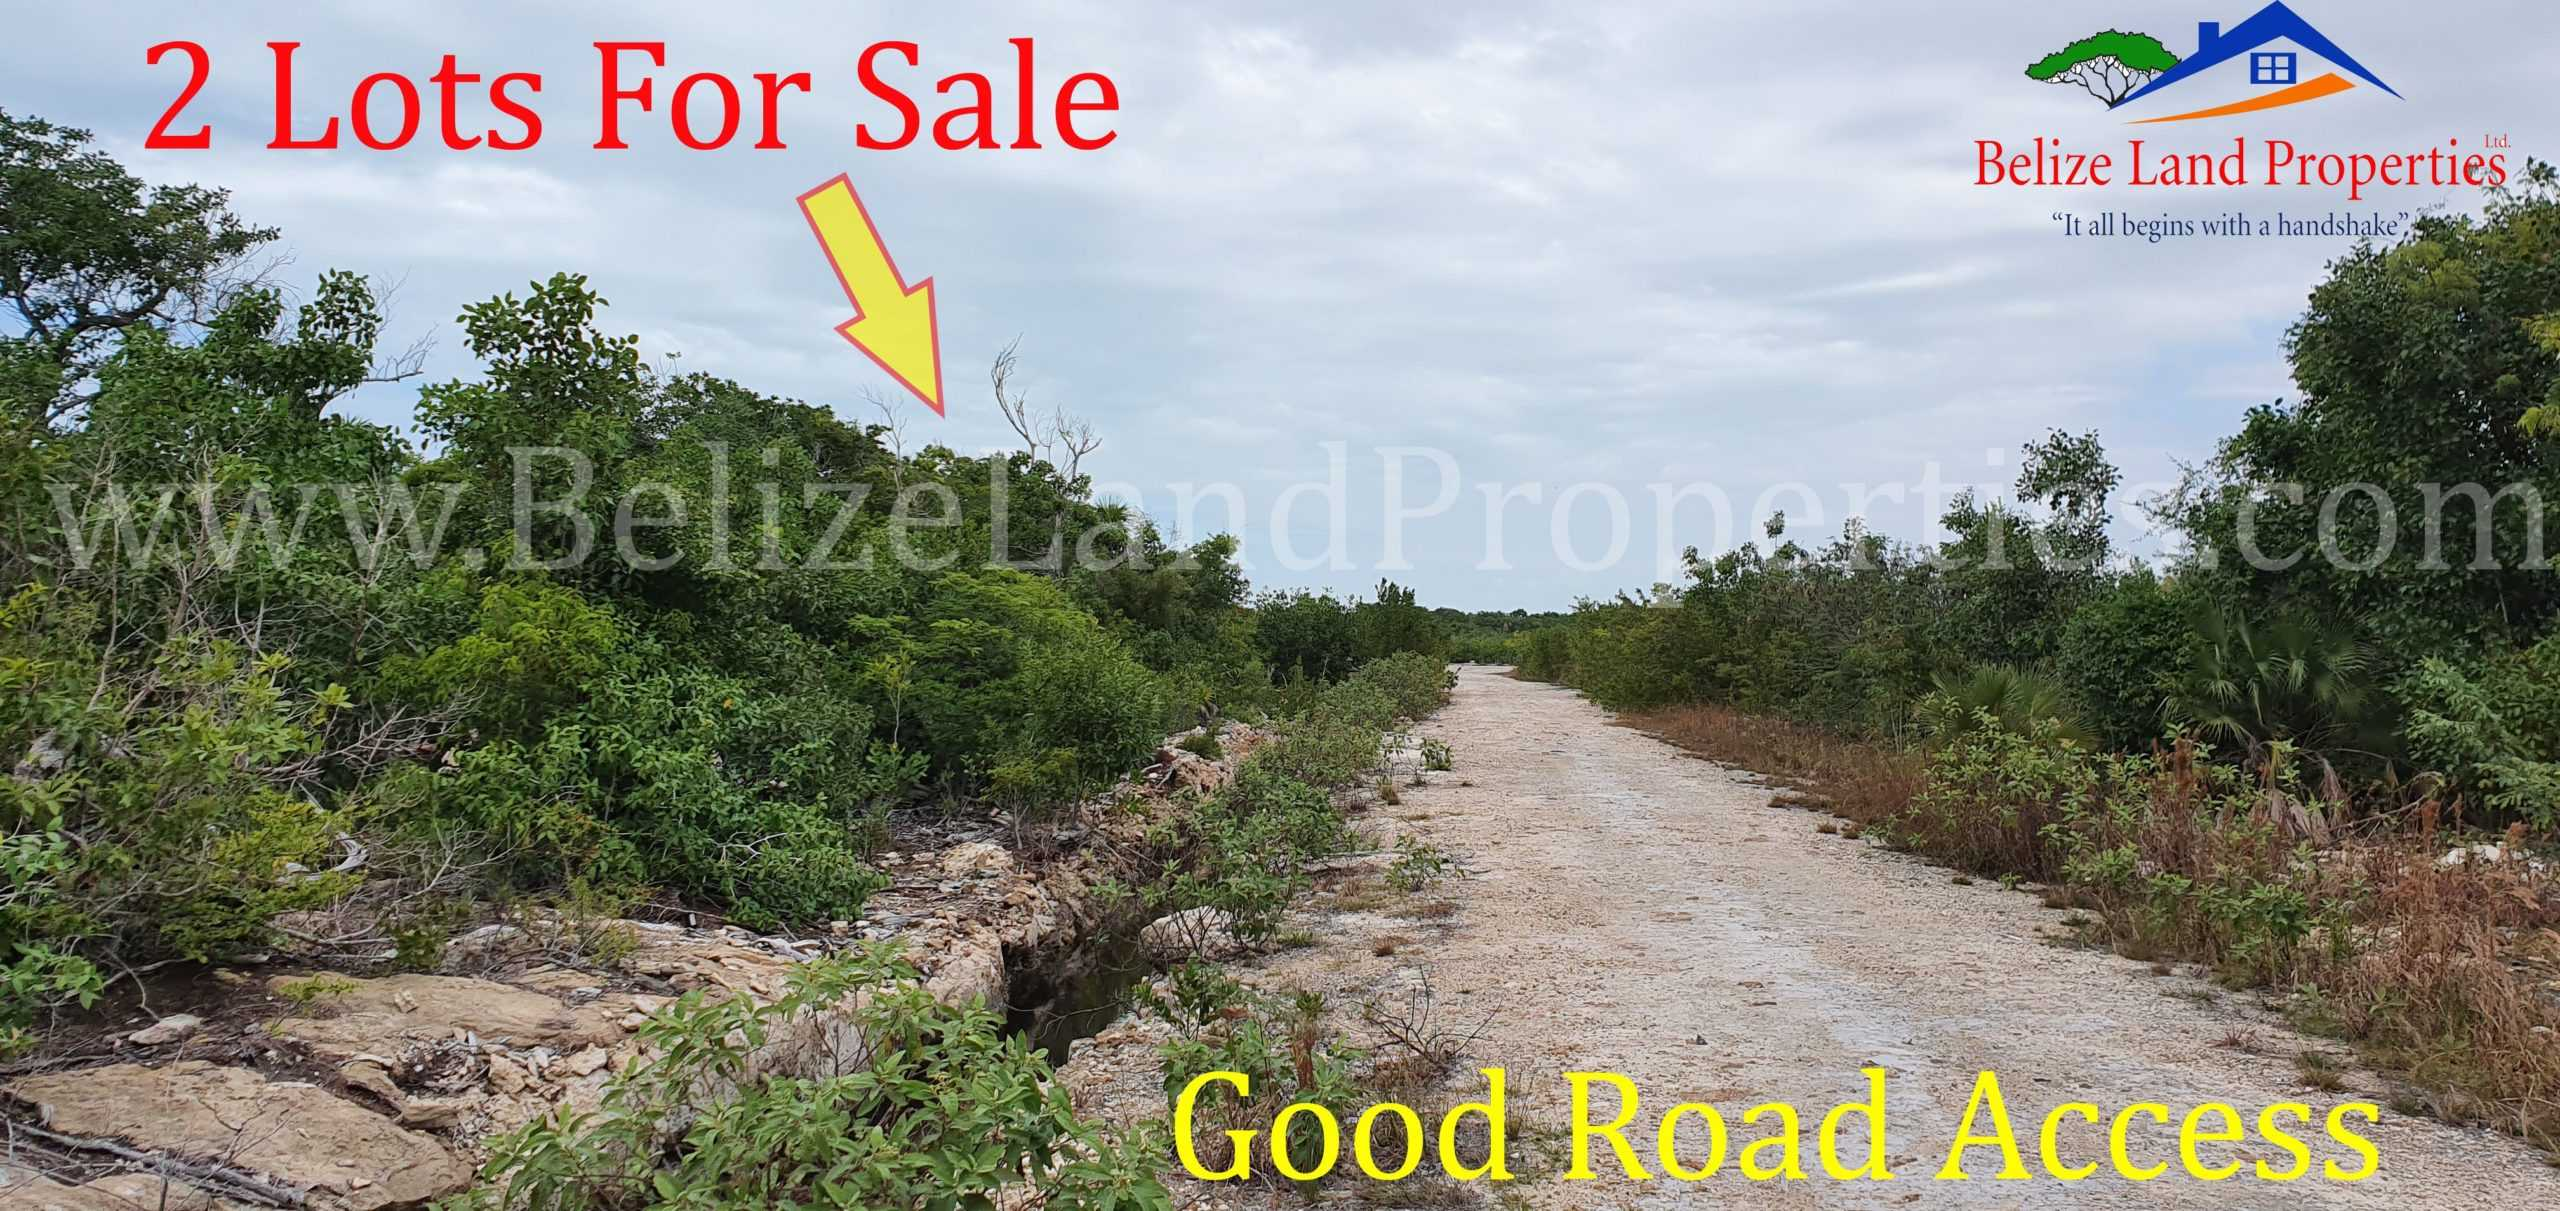 A20: Affordable Residential Lot Near Secret Beach, Ambergris Caye!